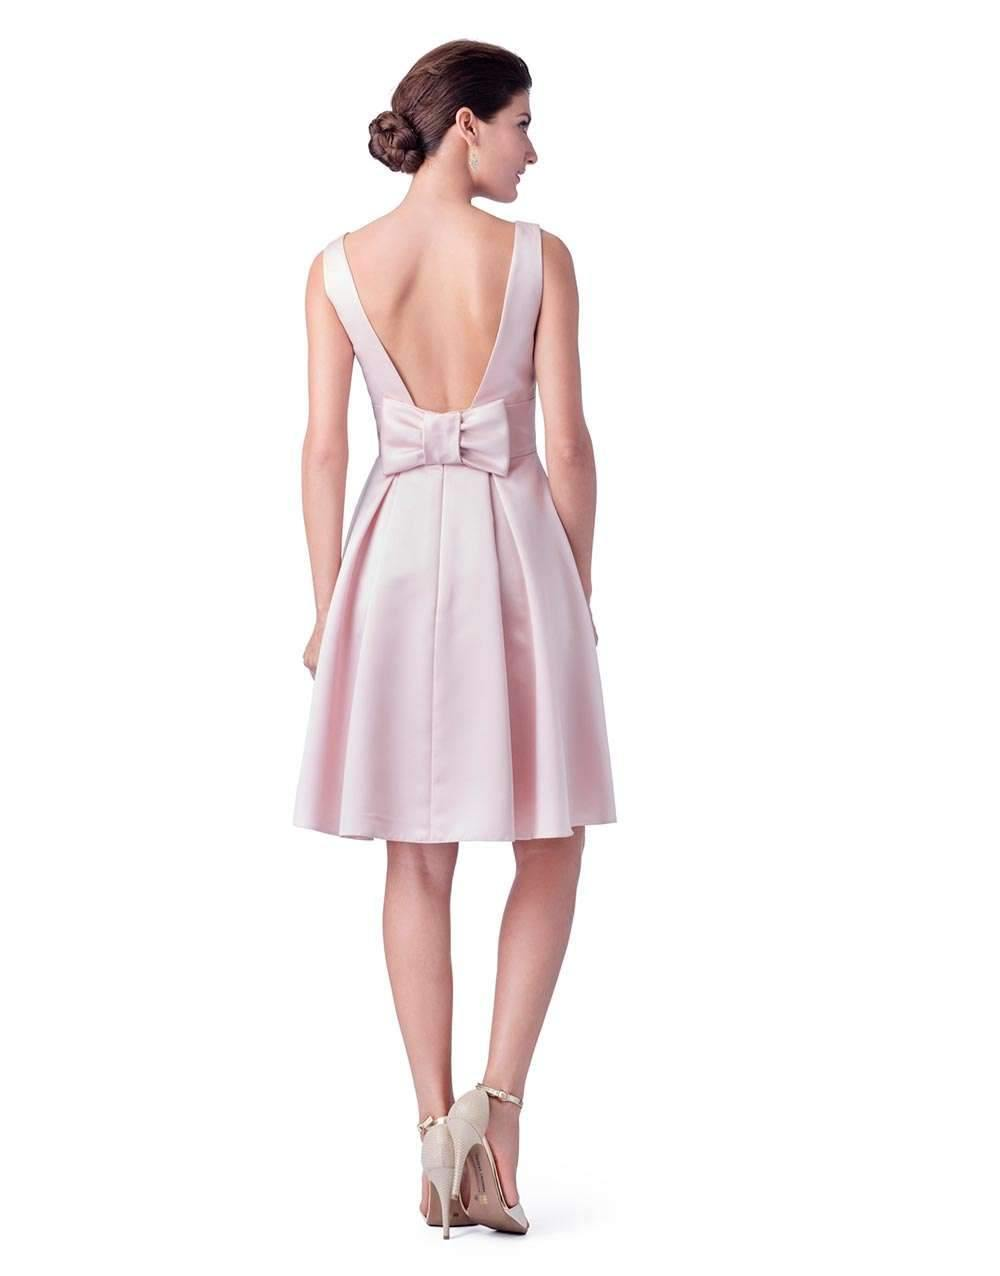 UK16 NUDE - LOUISE LONG VERSION - Adore Bridal and Occasion Wear